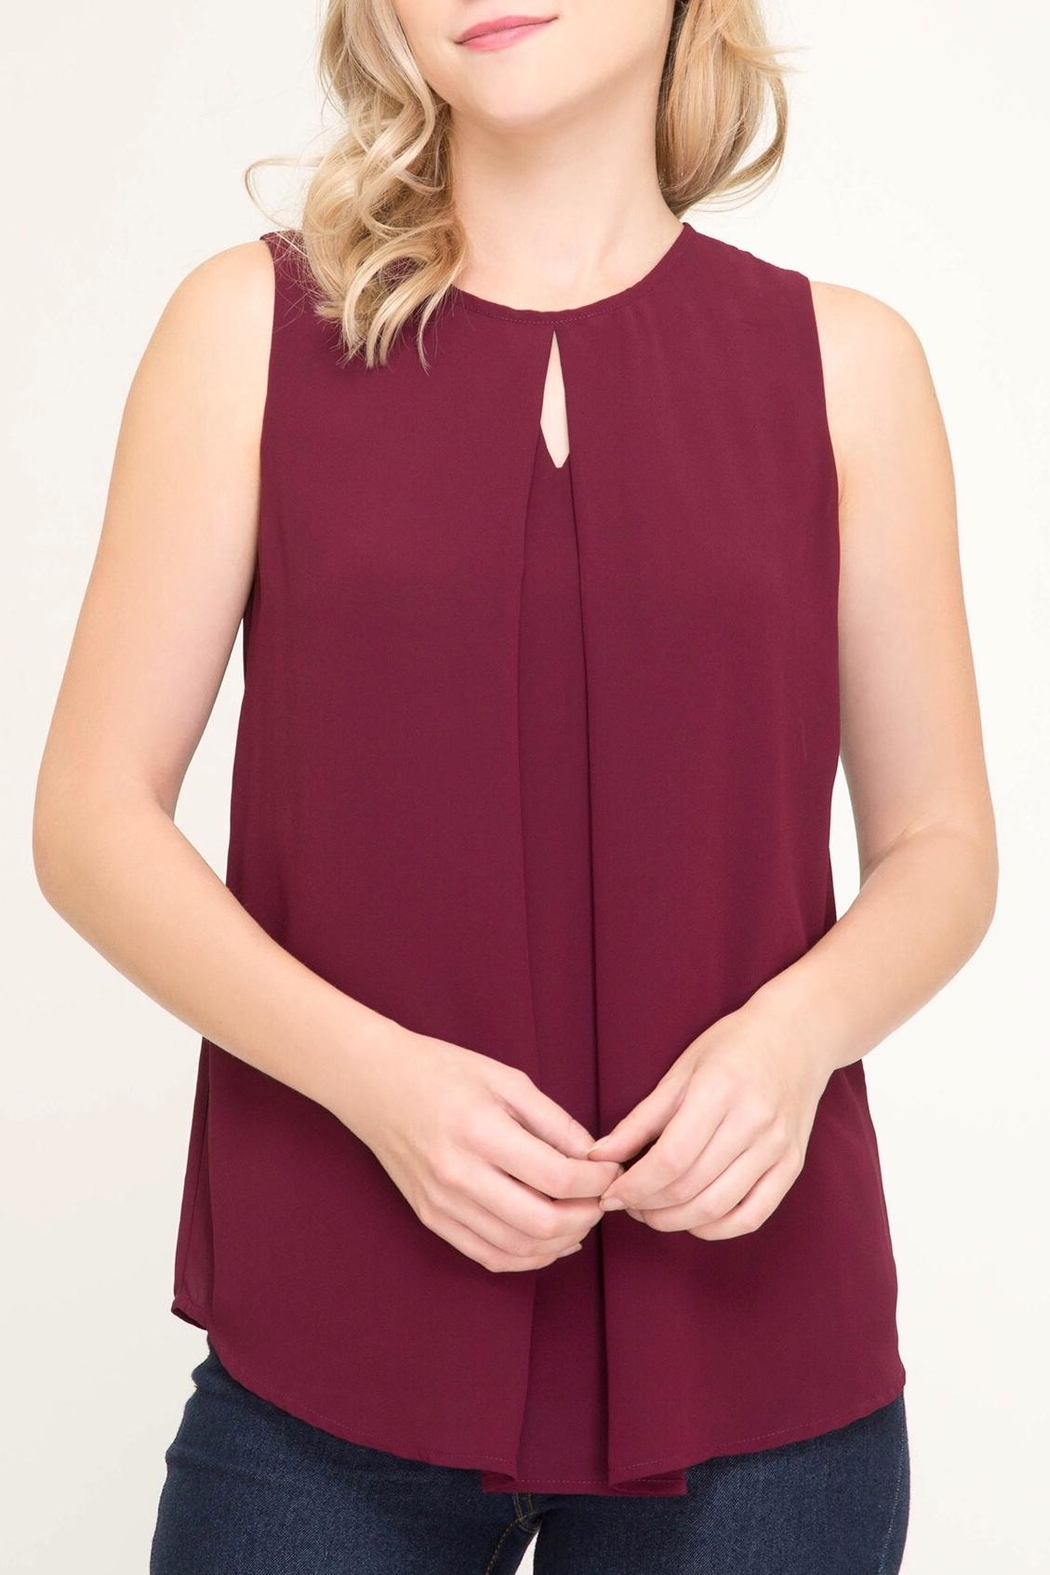 LuLu's Boutique Keyhole Sleeveless Blouse - Main Image